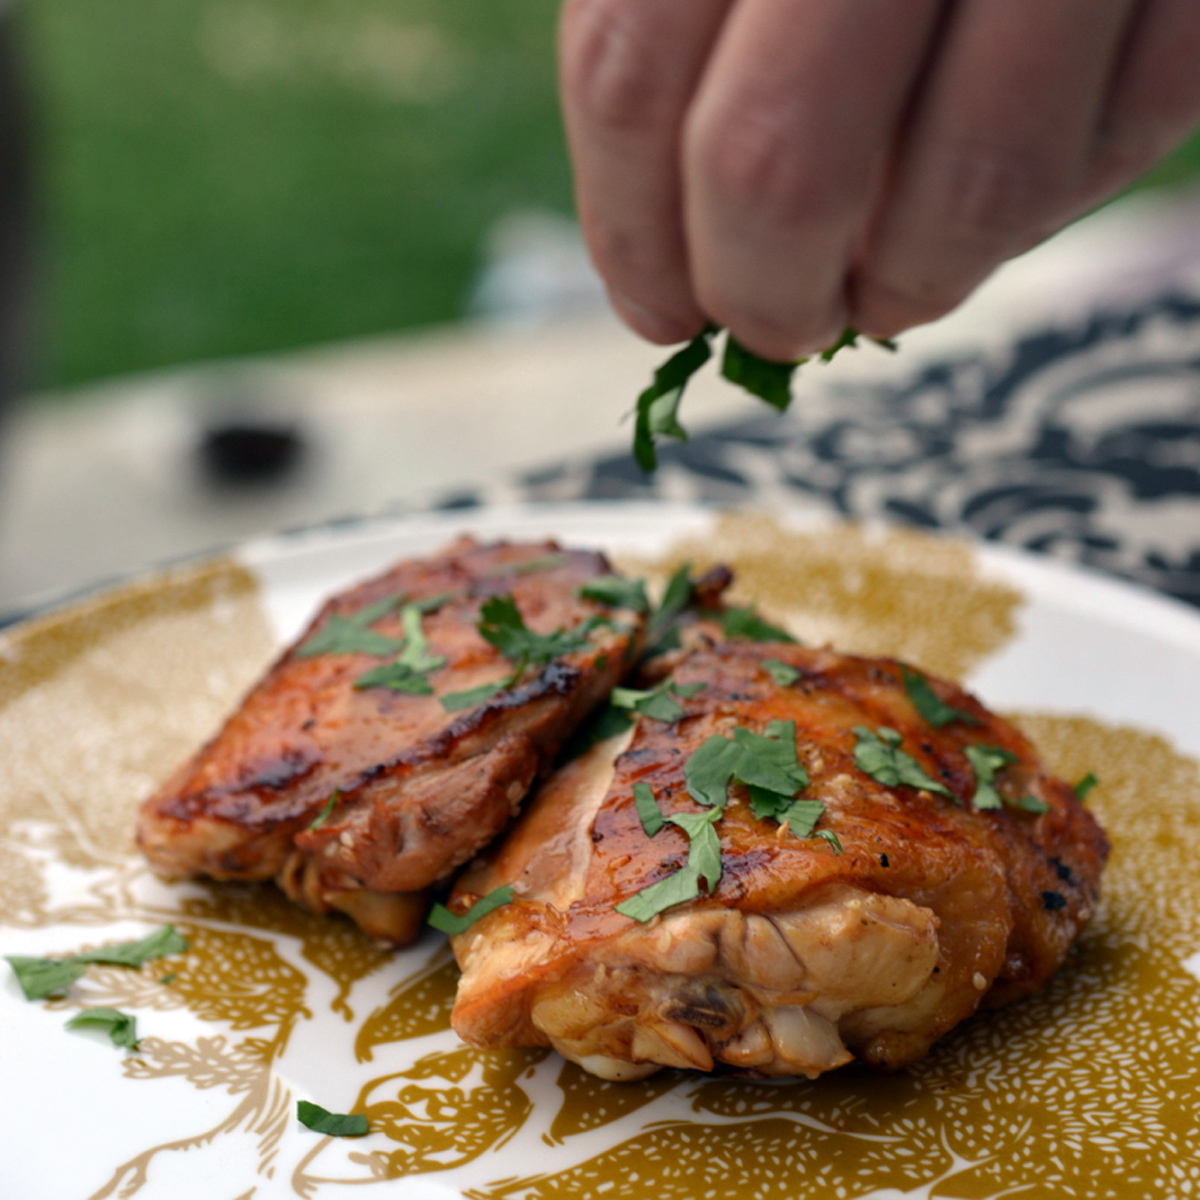 Sherry–Soy Sauce Chicken